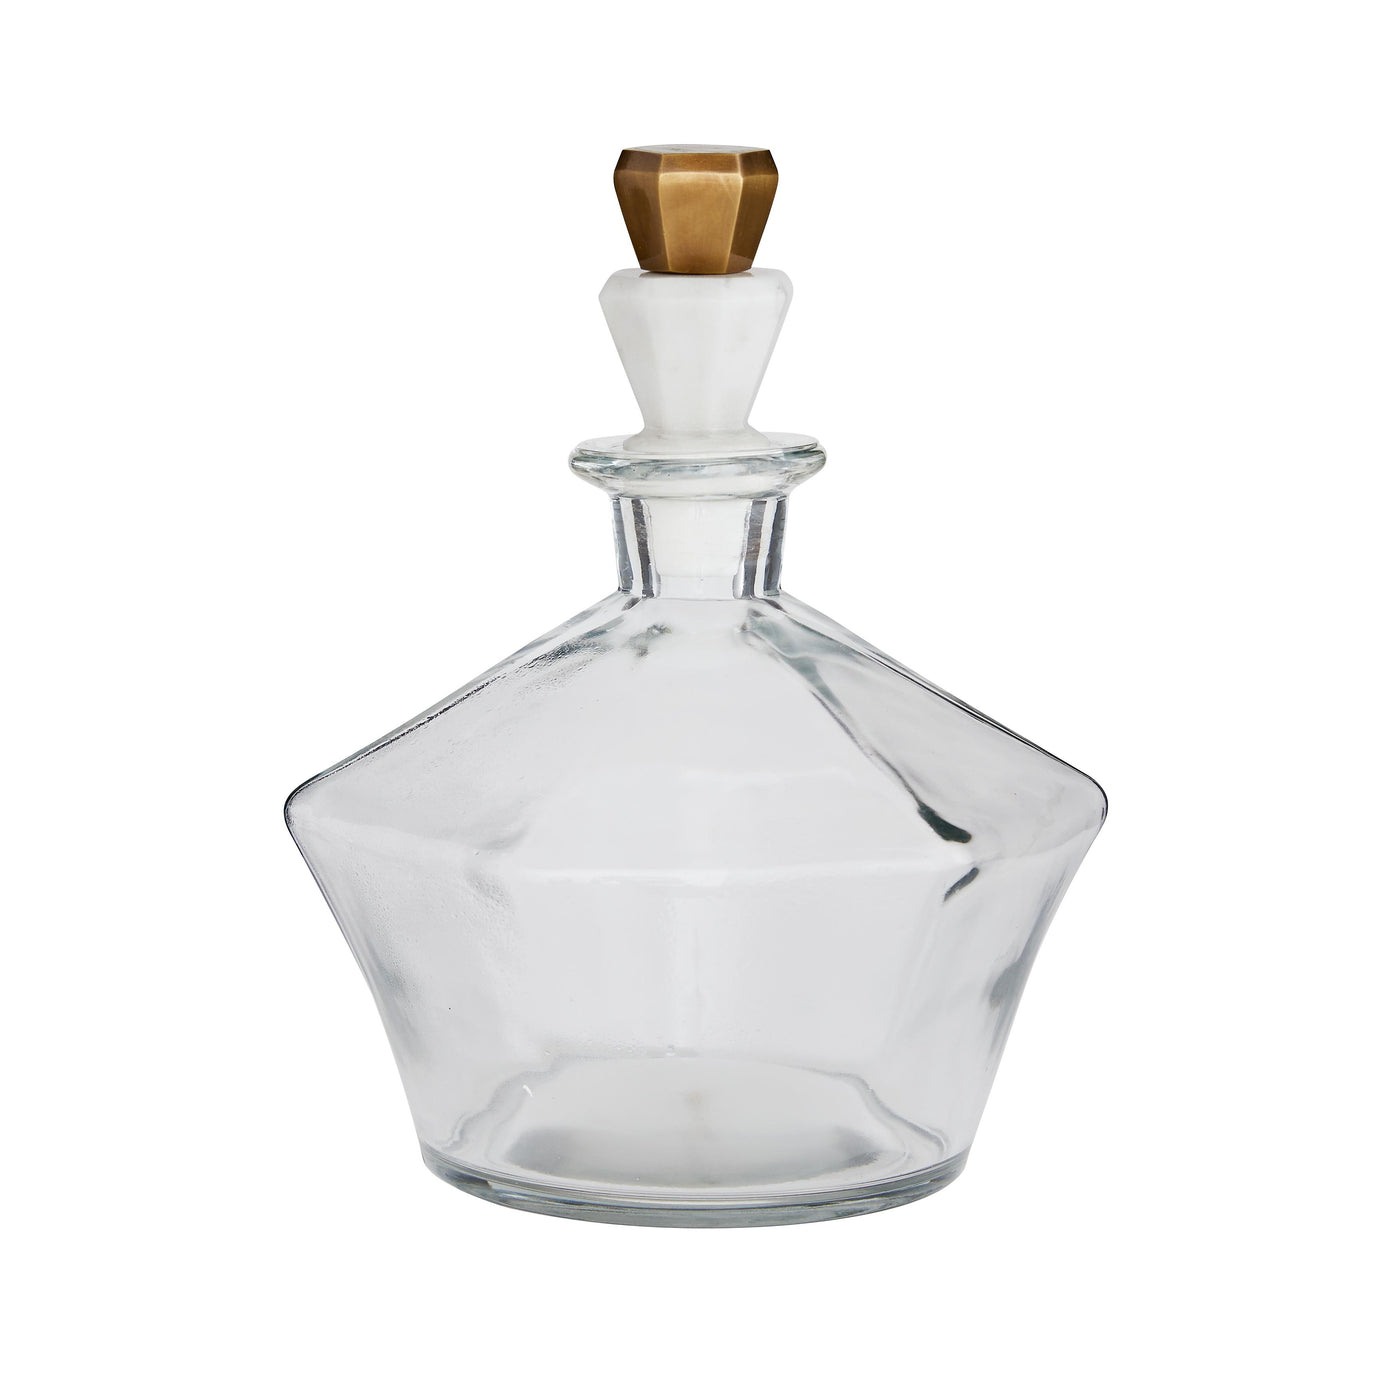 arteriors home Wilshire glass decanter glass